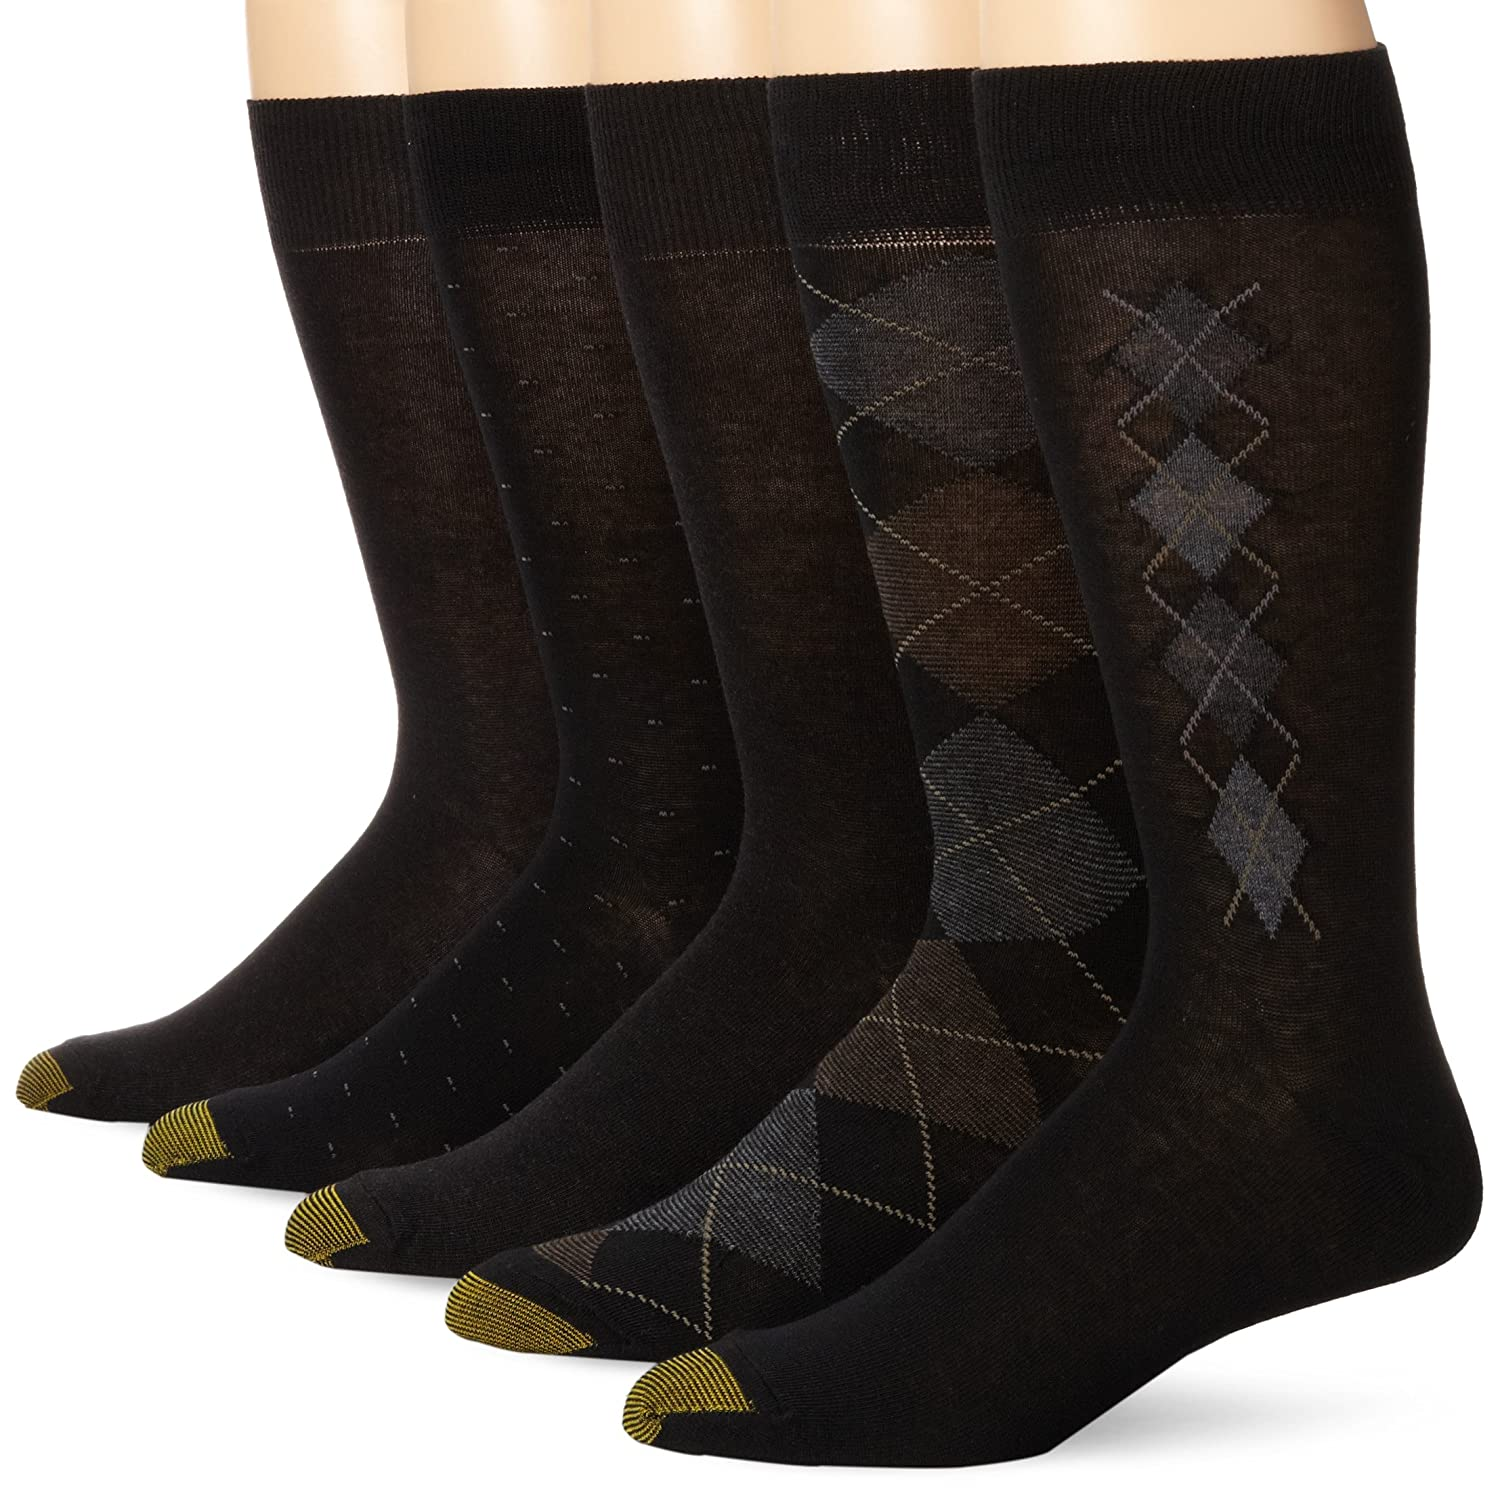 Gold Toe Men's Assorted Crew Socks